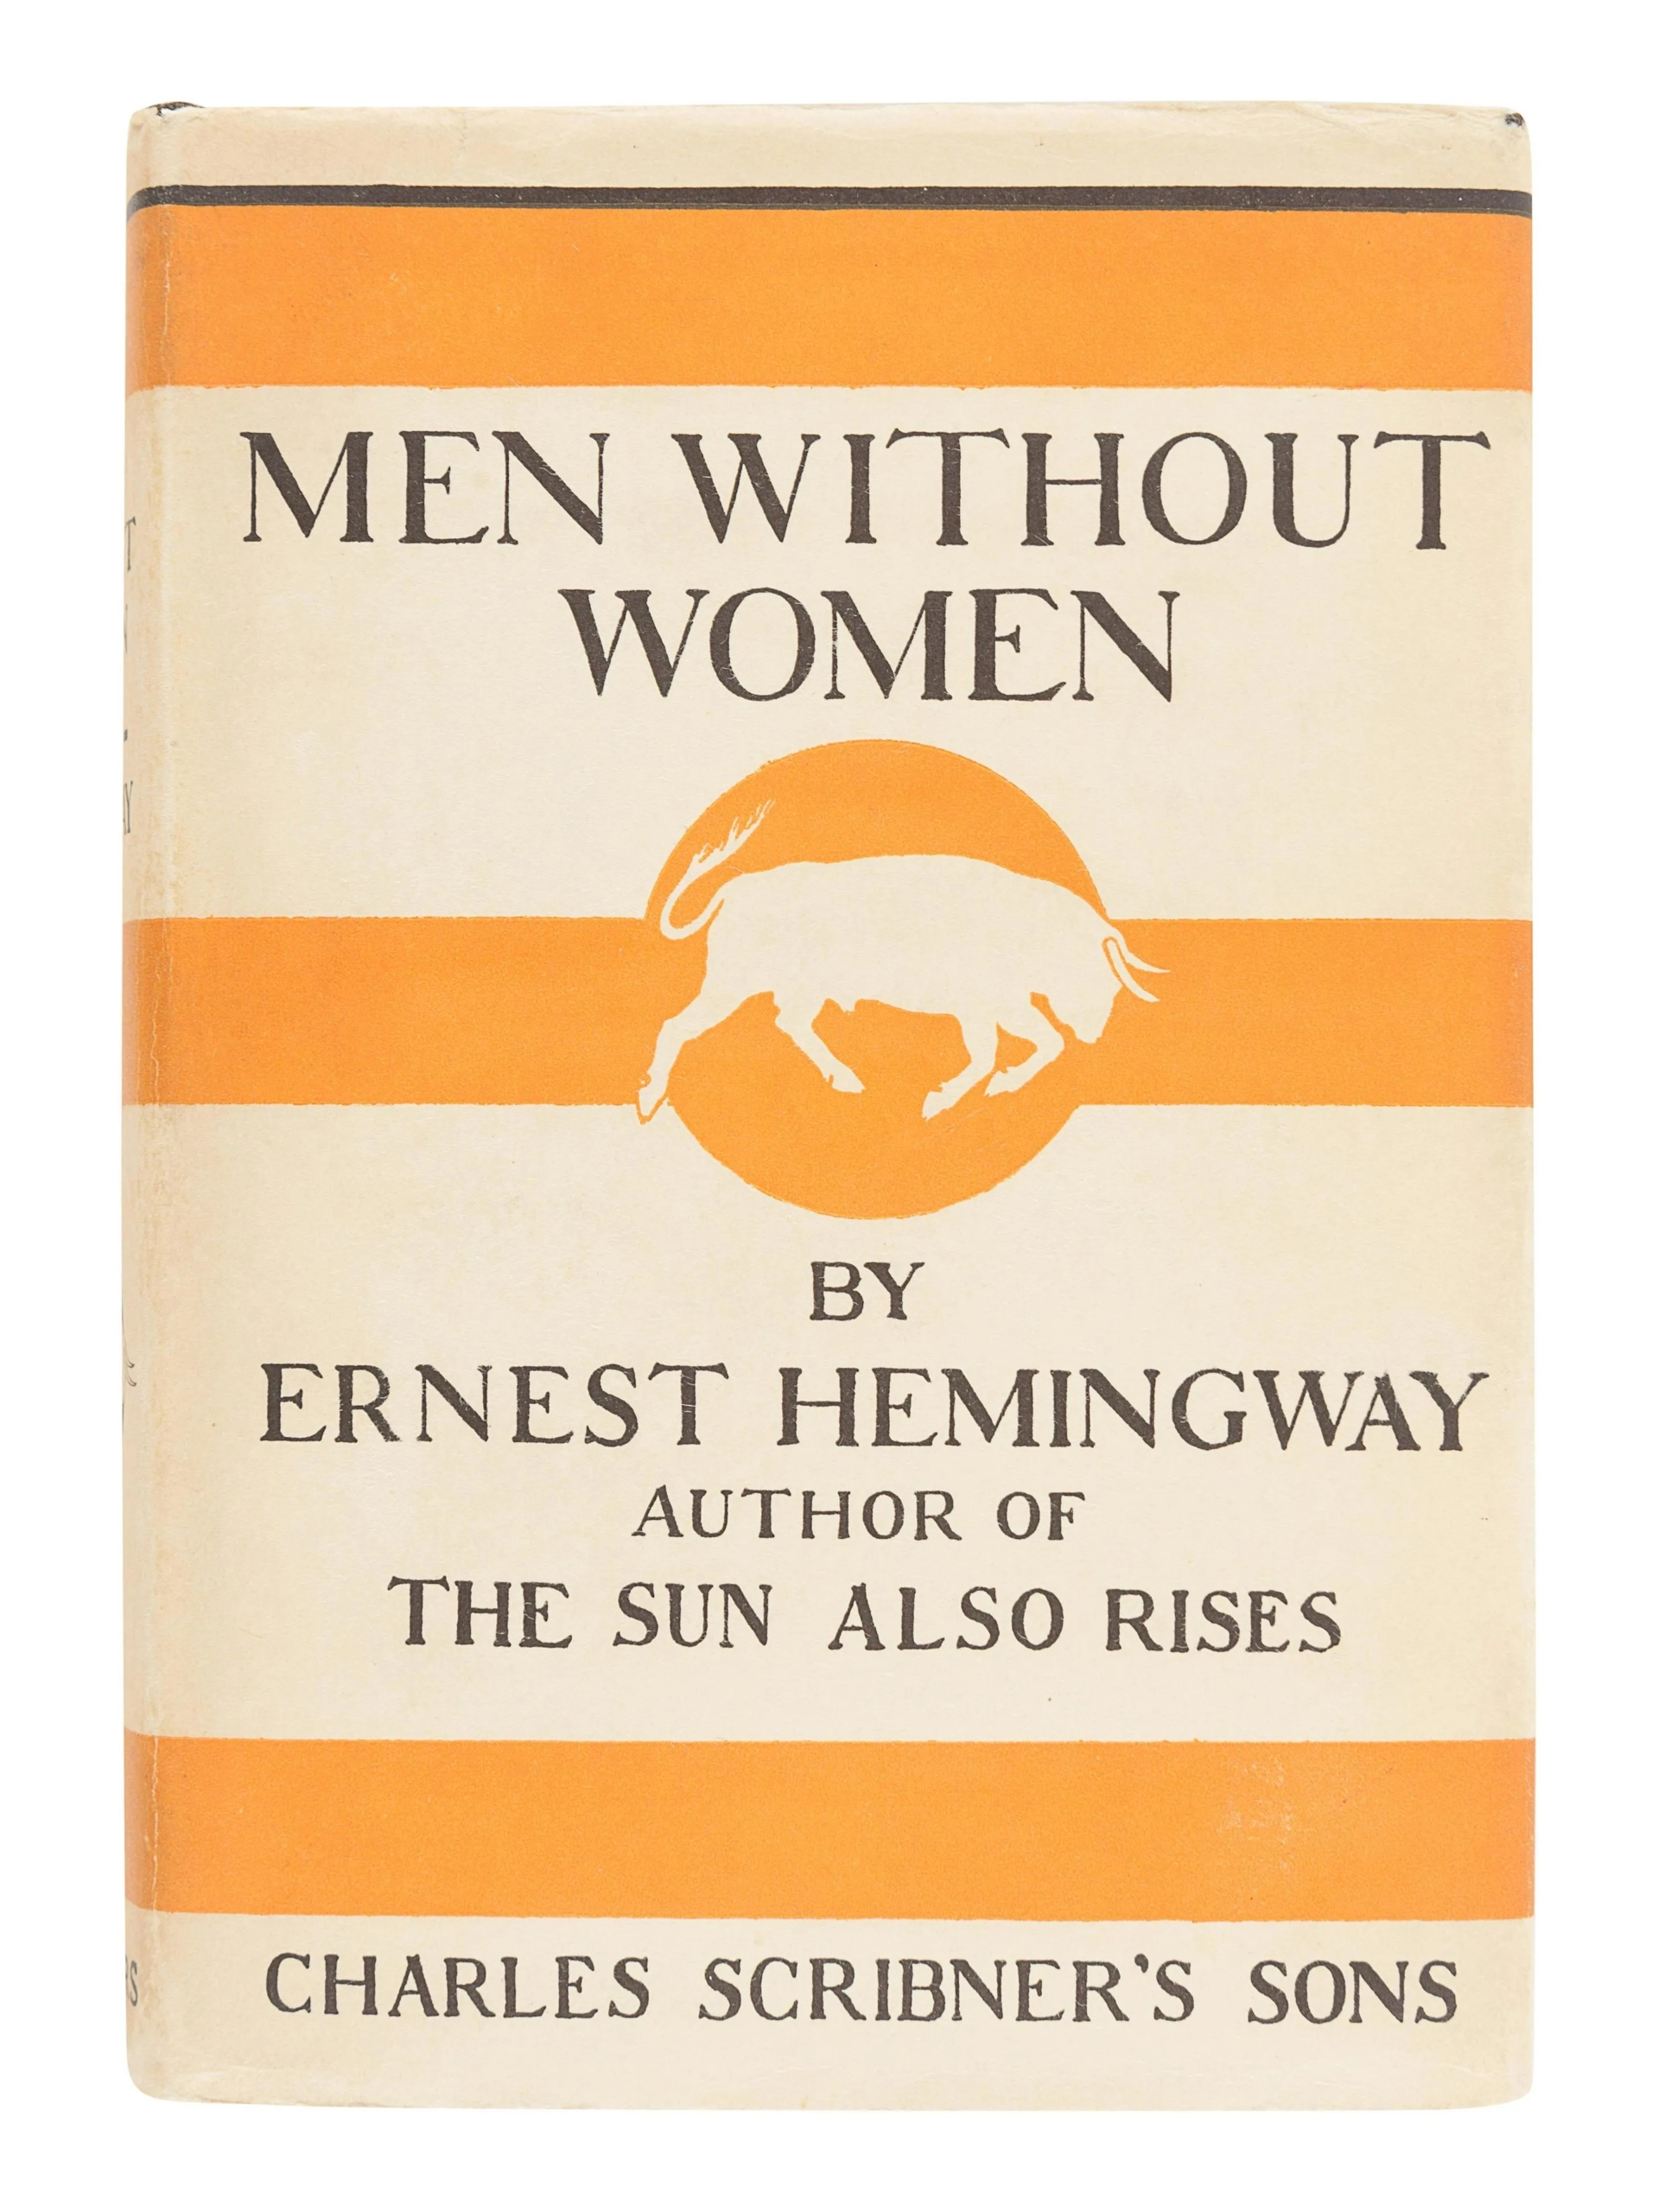 Ernest Hemingway, 'Men Without Women,' $11,875 including buyer's premium. Image courtesy Hindman